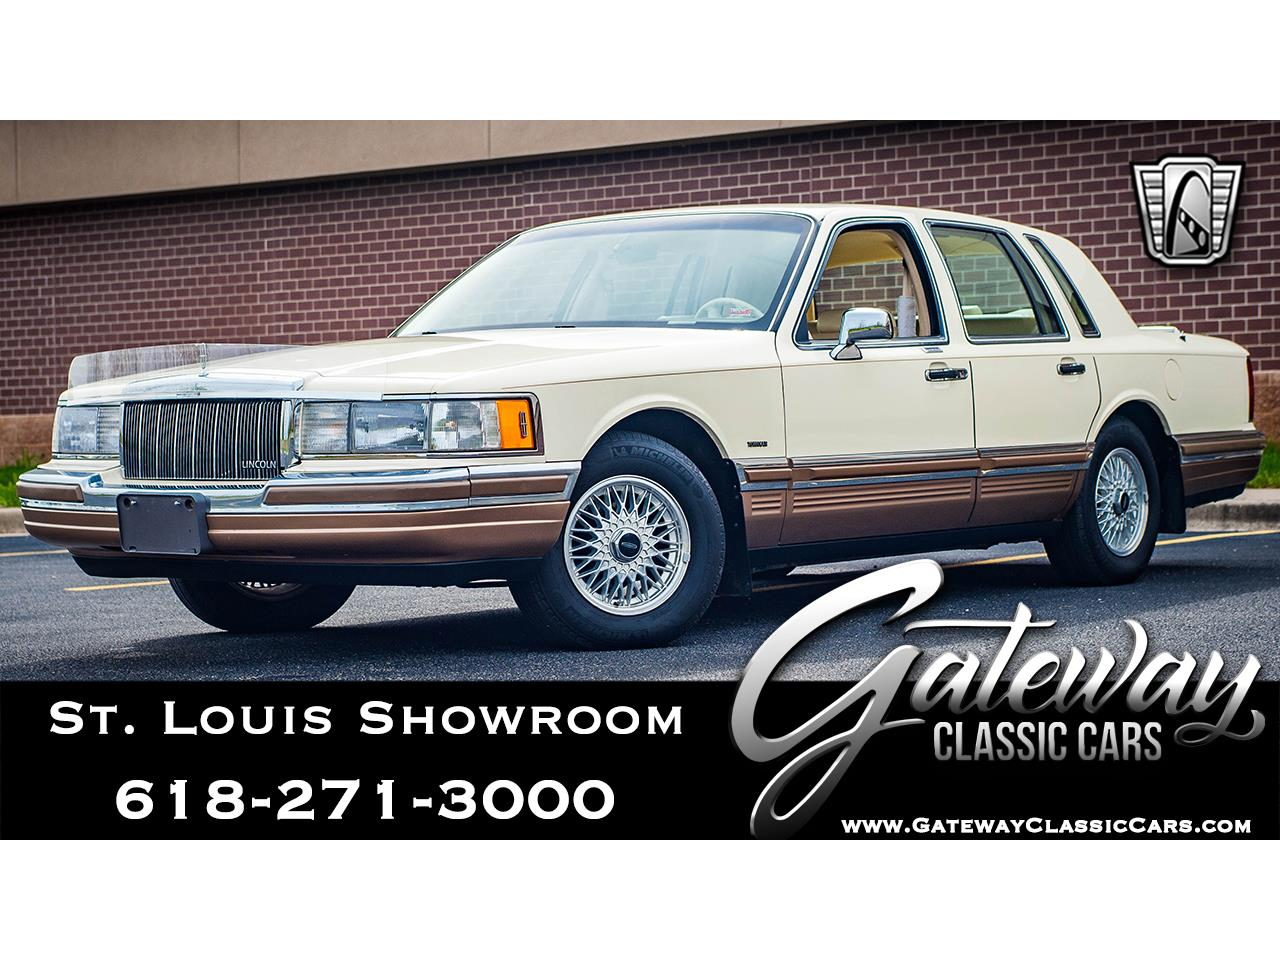 Large Picture of 1990 Lincoln Town Car located in O'Fallon Illinois - $16,500.00 Offered by Gateway Classic Cars - St. Louis - QB8G